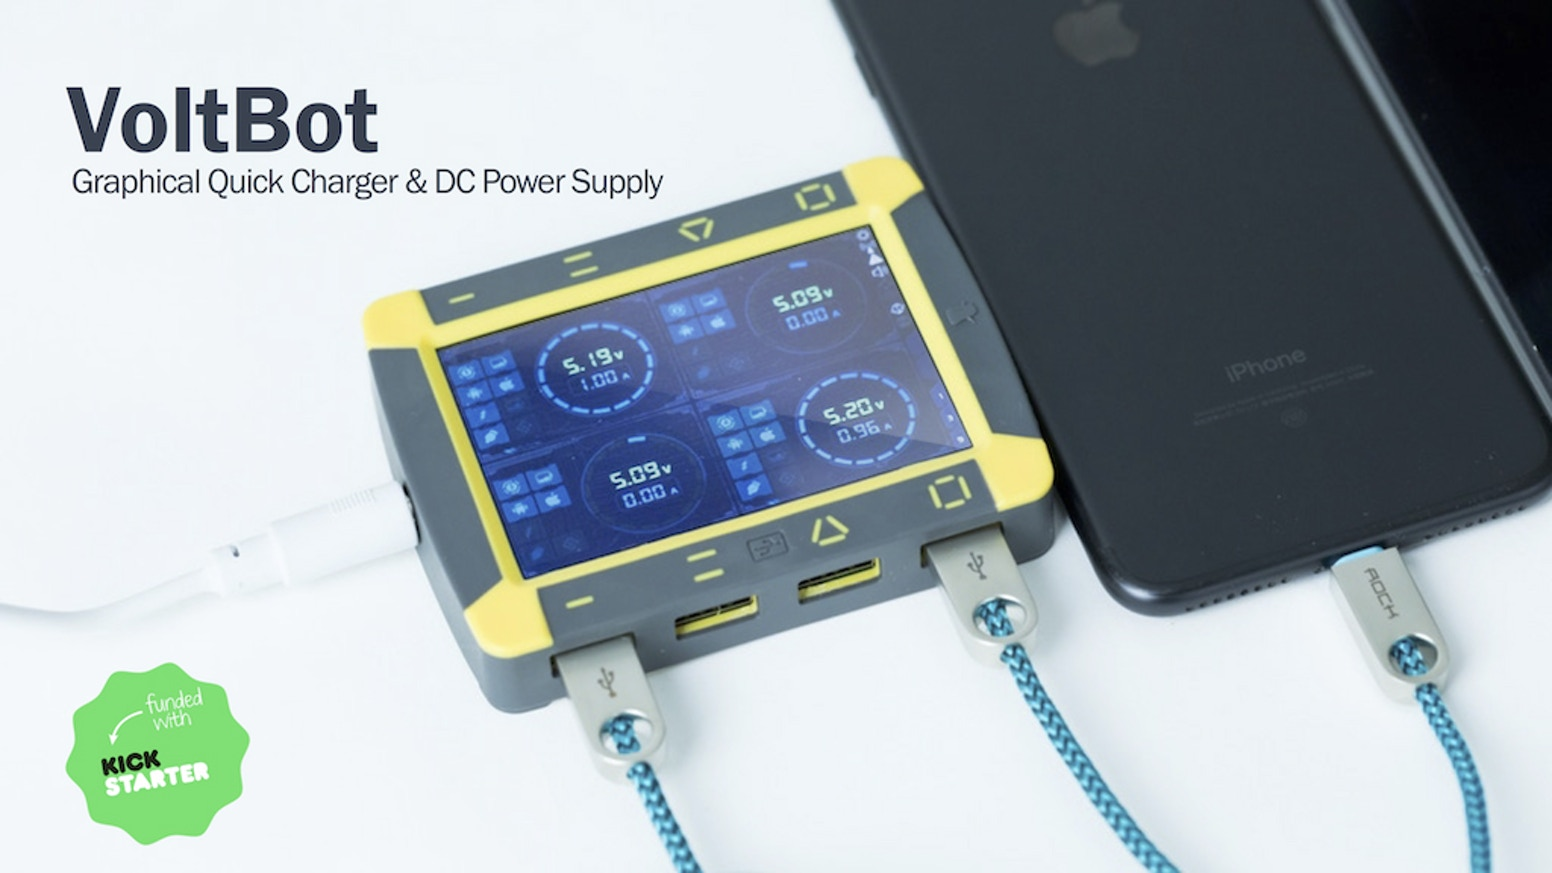 Tiny-size 4 channel DC power supply with LCD and WiFi, also providing high-quality Graphical QuickCharge experience.